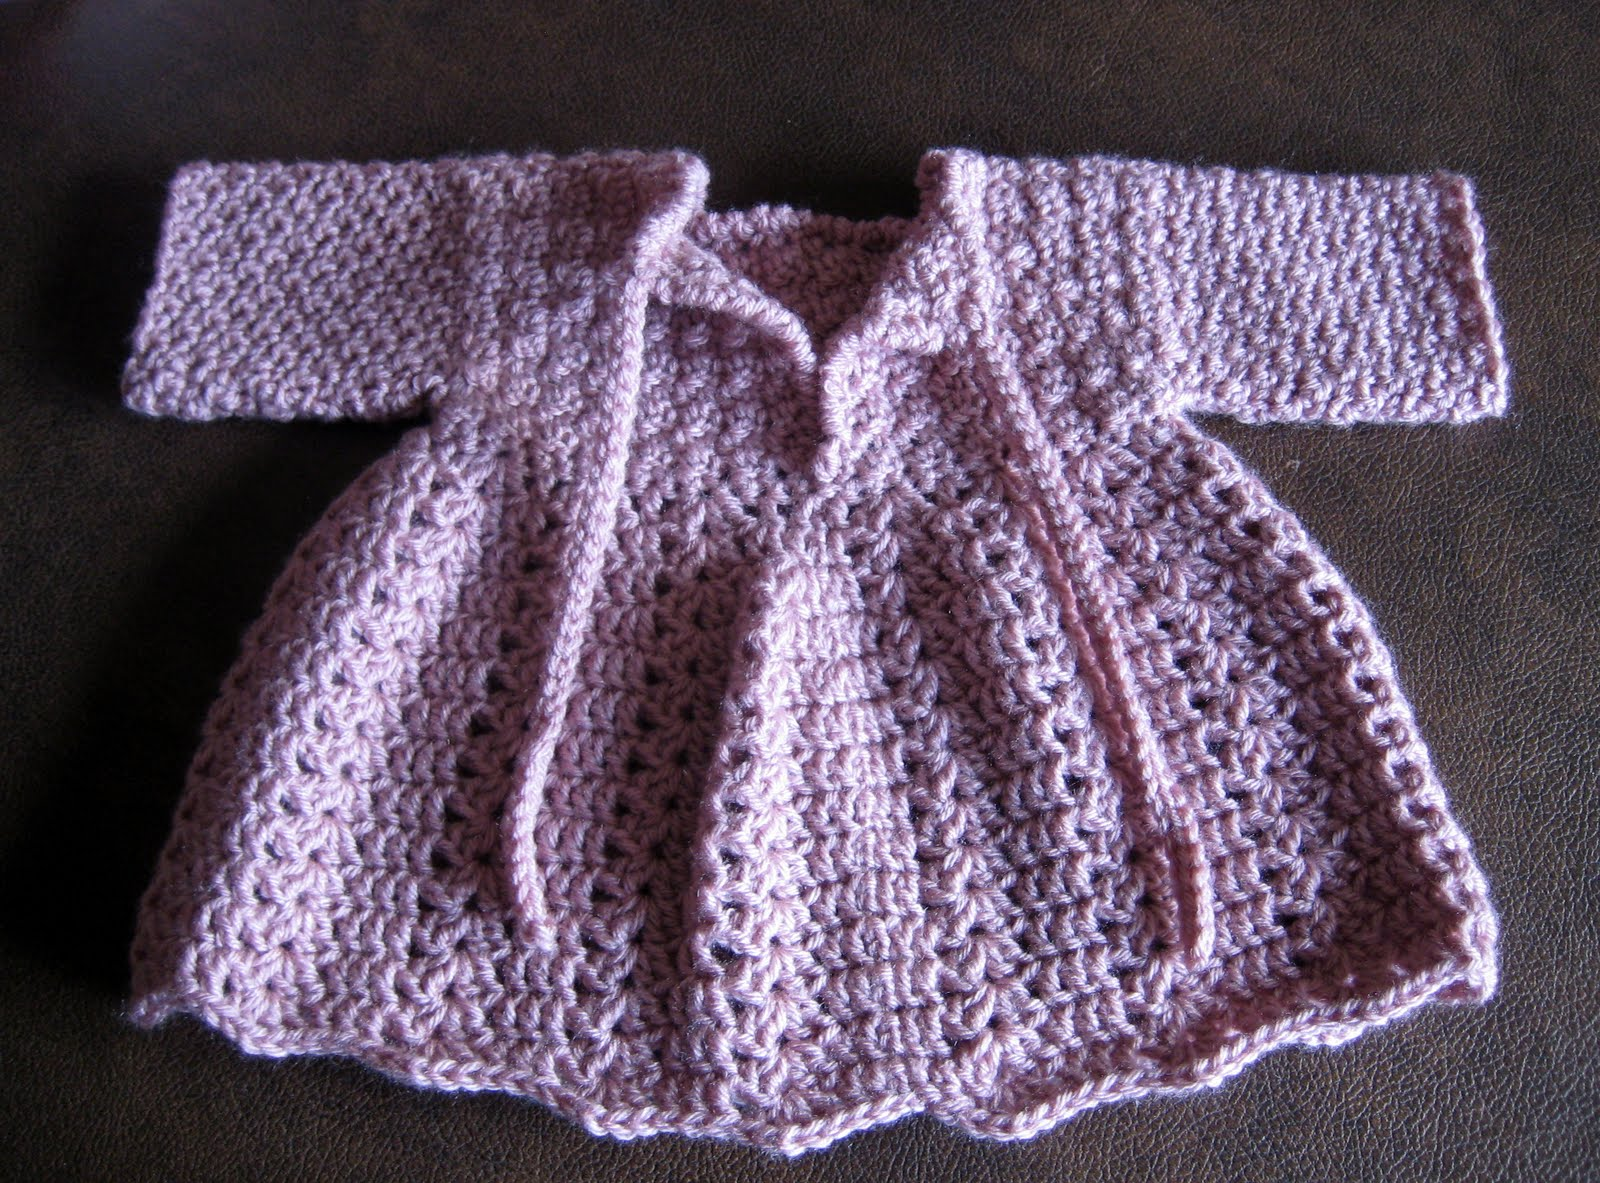 Crochet Baby Winter Dress Pattern : Knotty Generation: Crochet Baby Winter Dress